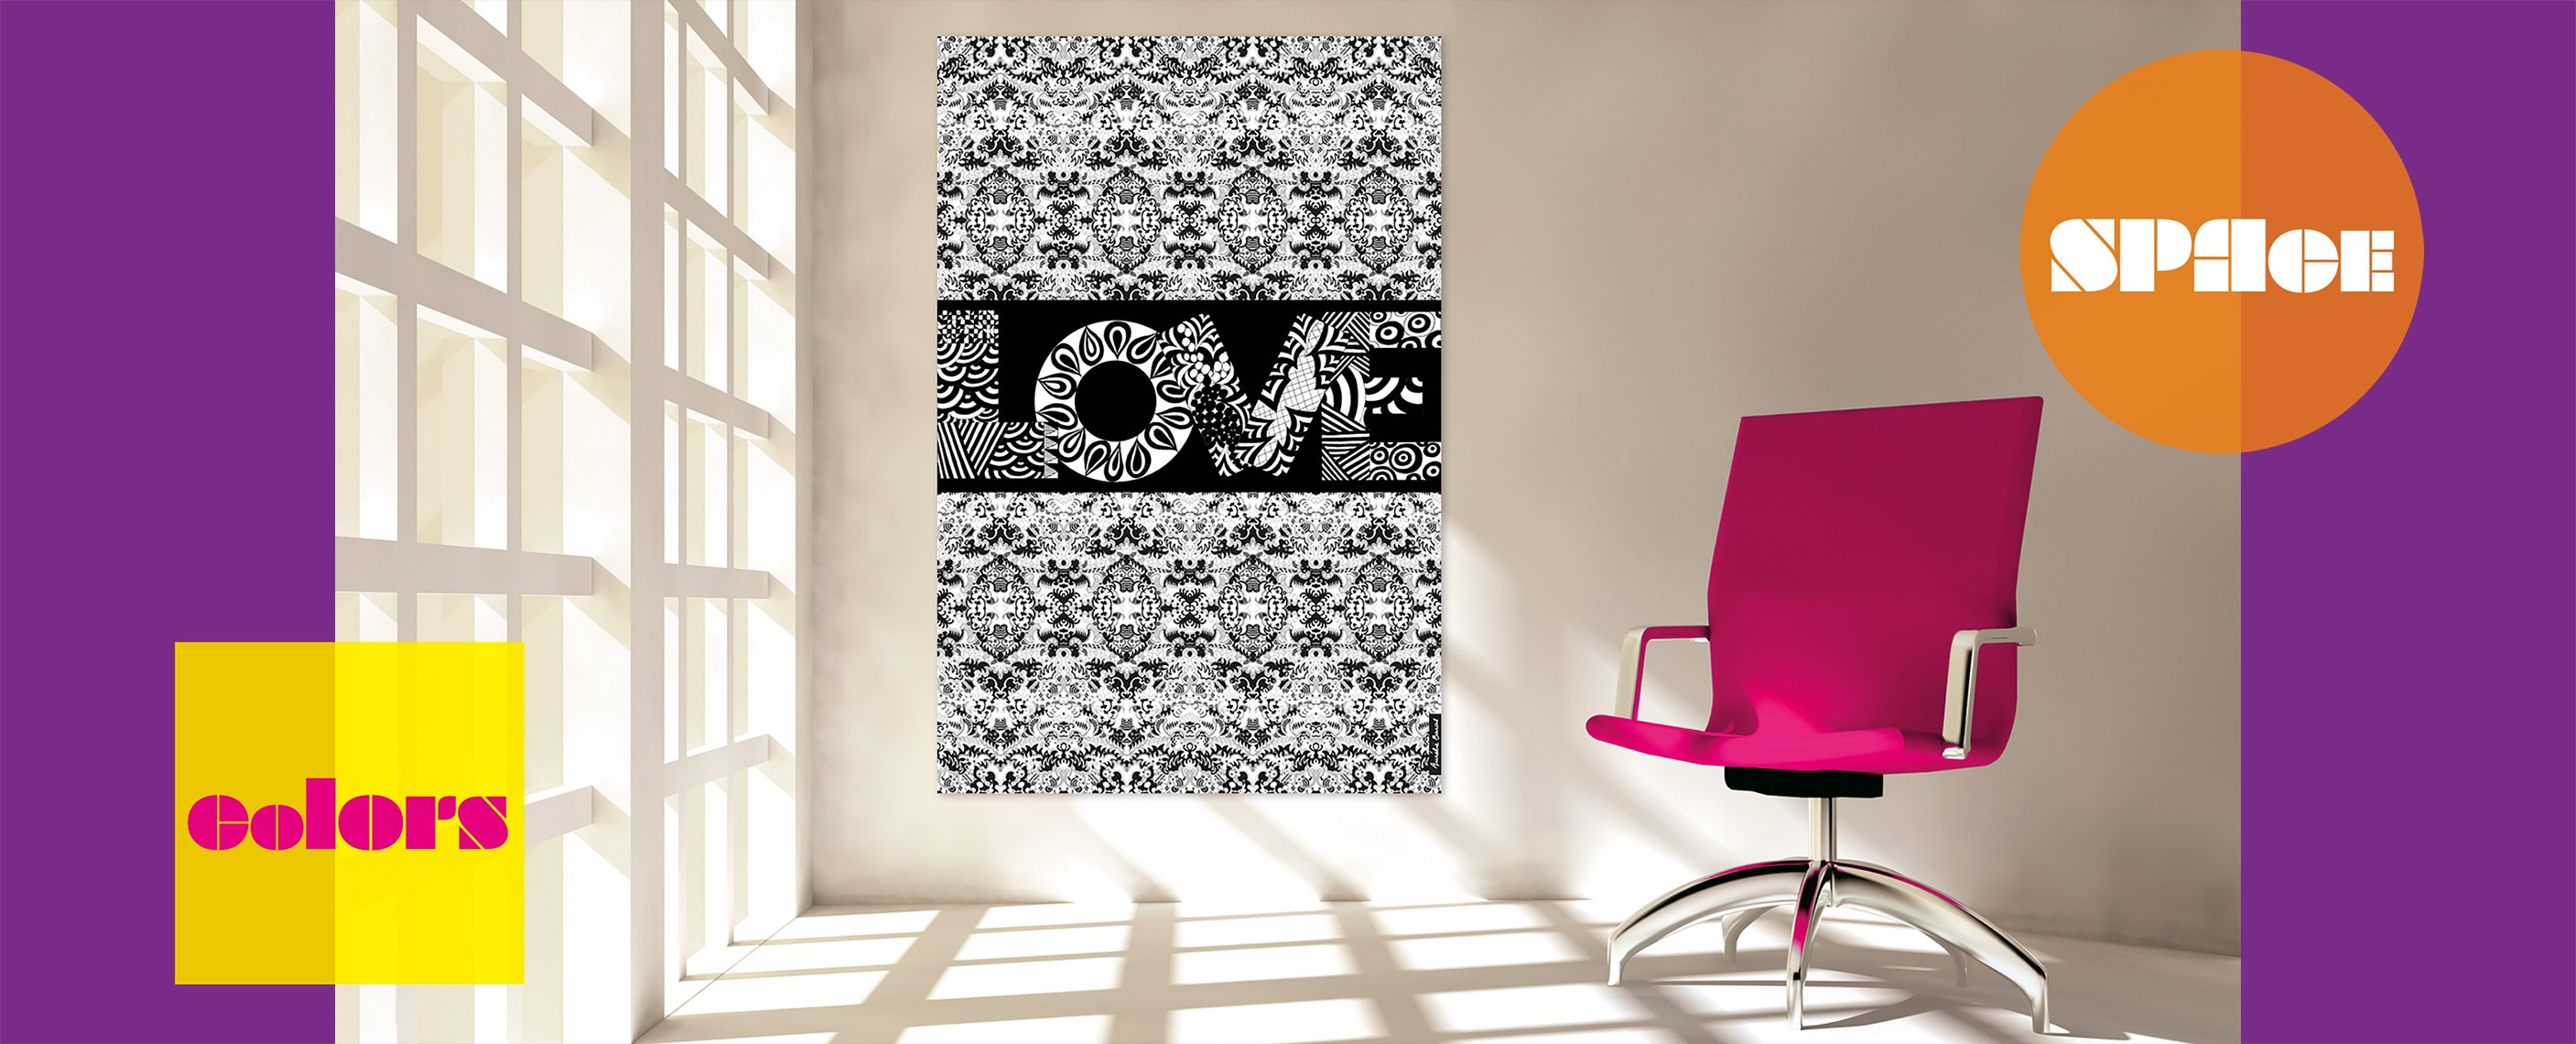 1poster_baroque_love